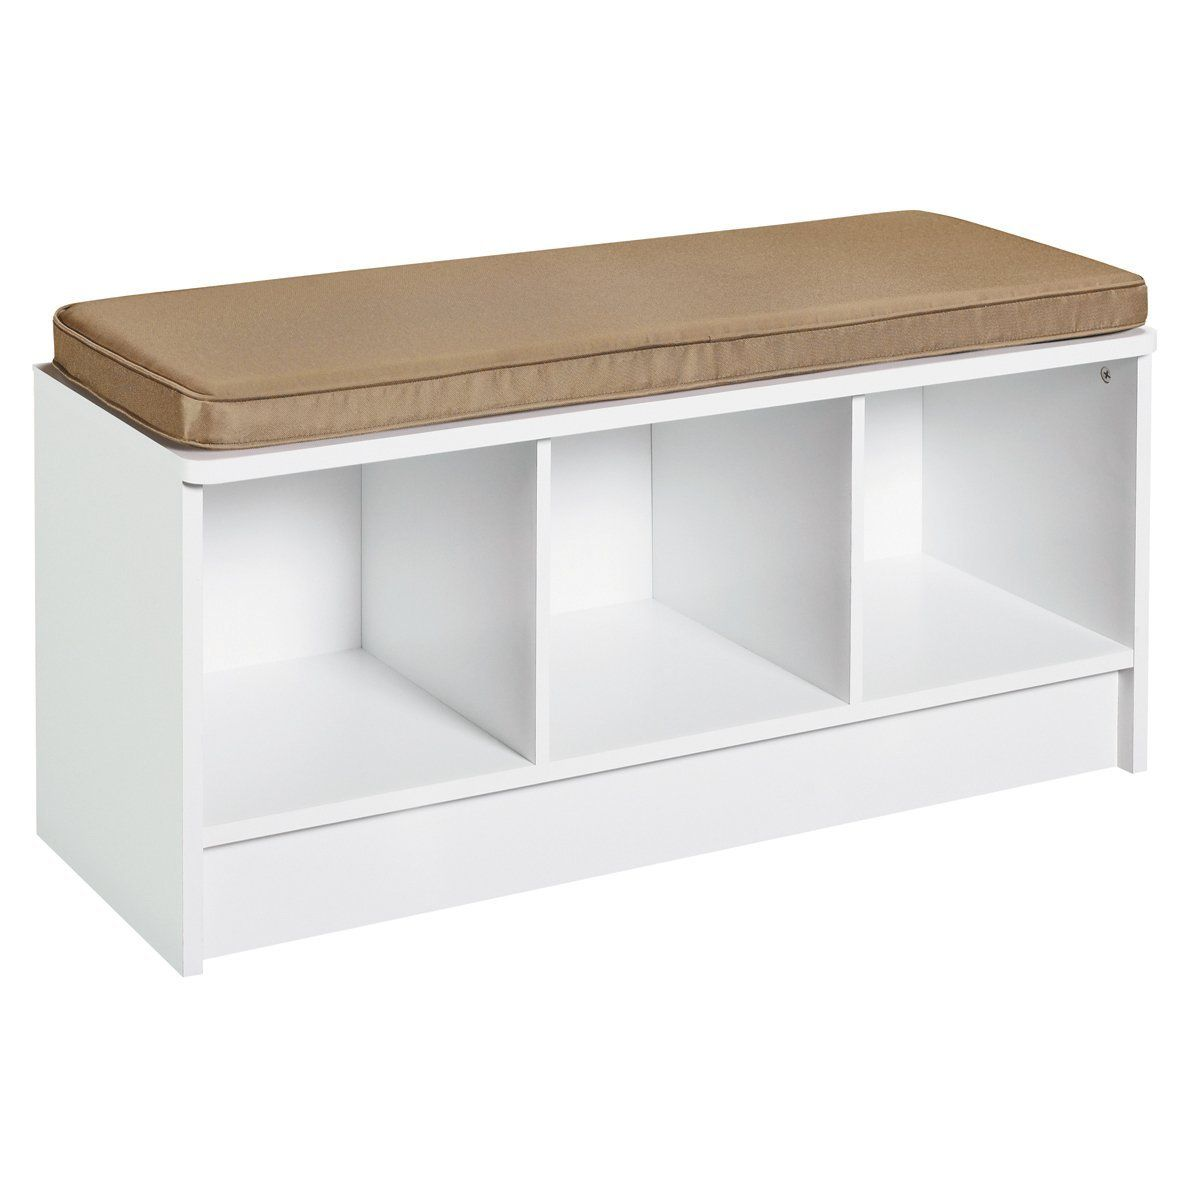 Awesome Amazon Com Closetmaid 1569 Cubeicals 3 Cube Storage Bench Pdpeps Interior Chair Design Pdpepsorg